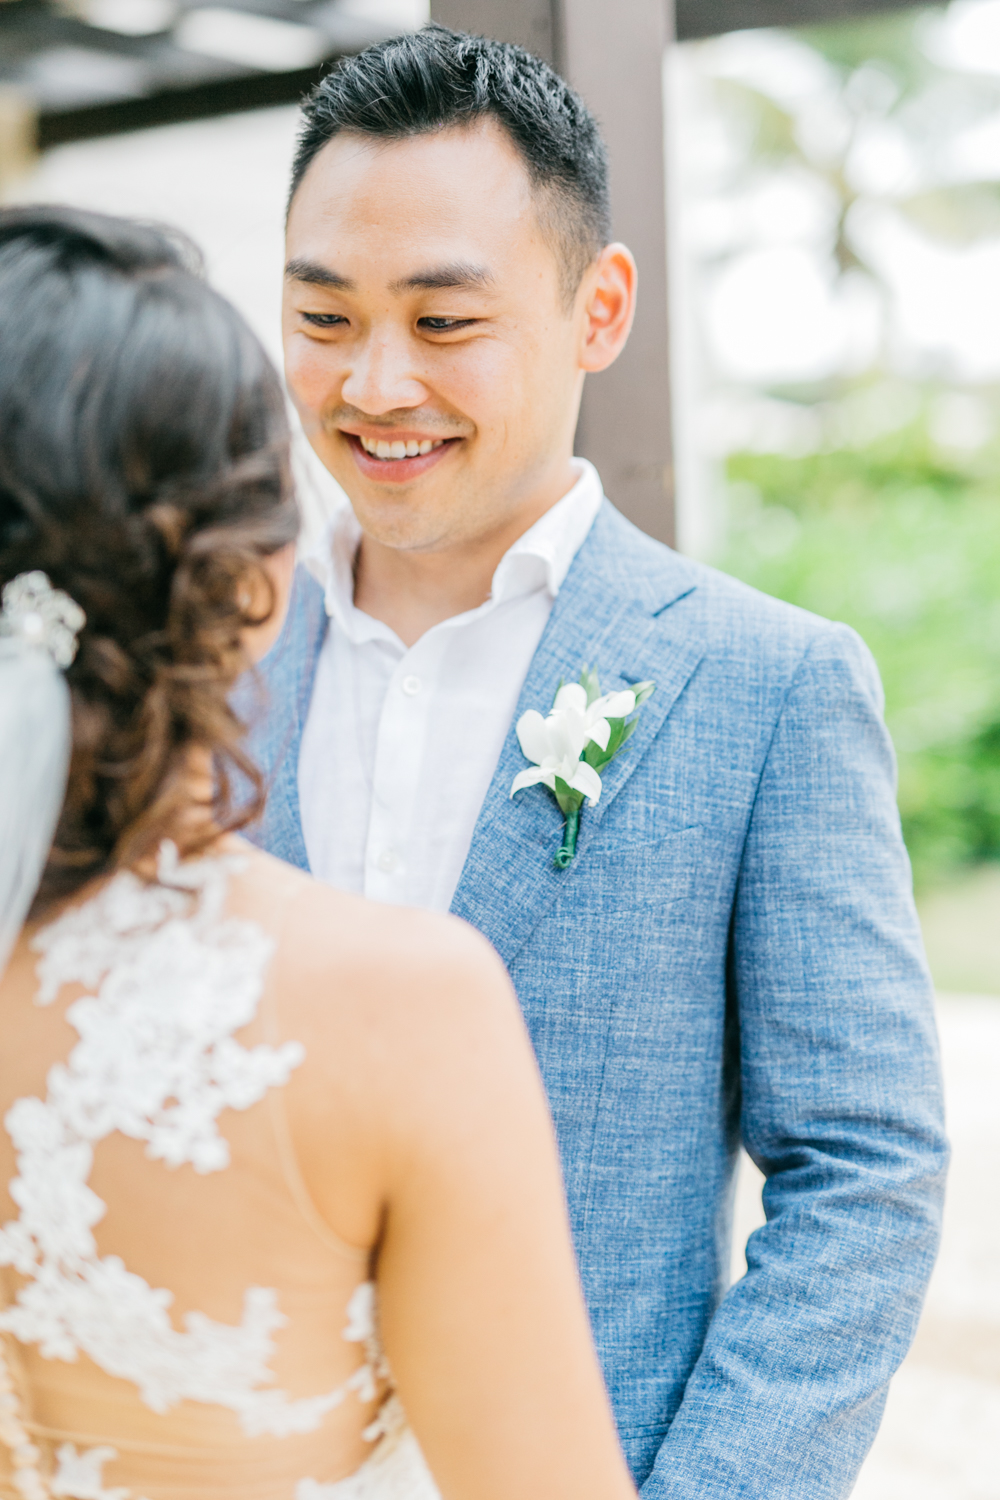 Groom smiling at bride during first look at Royalton White Sands Resort in Jamaica